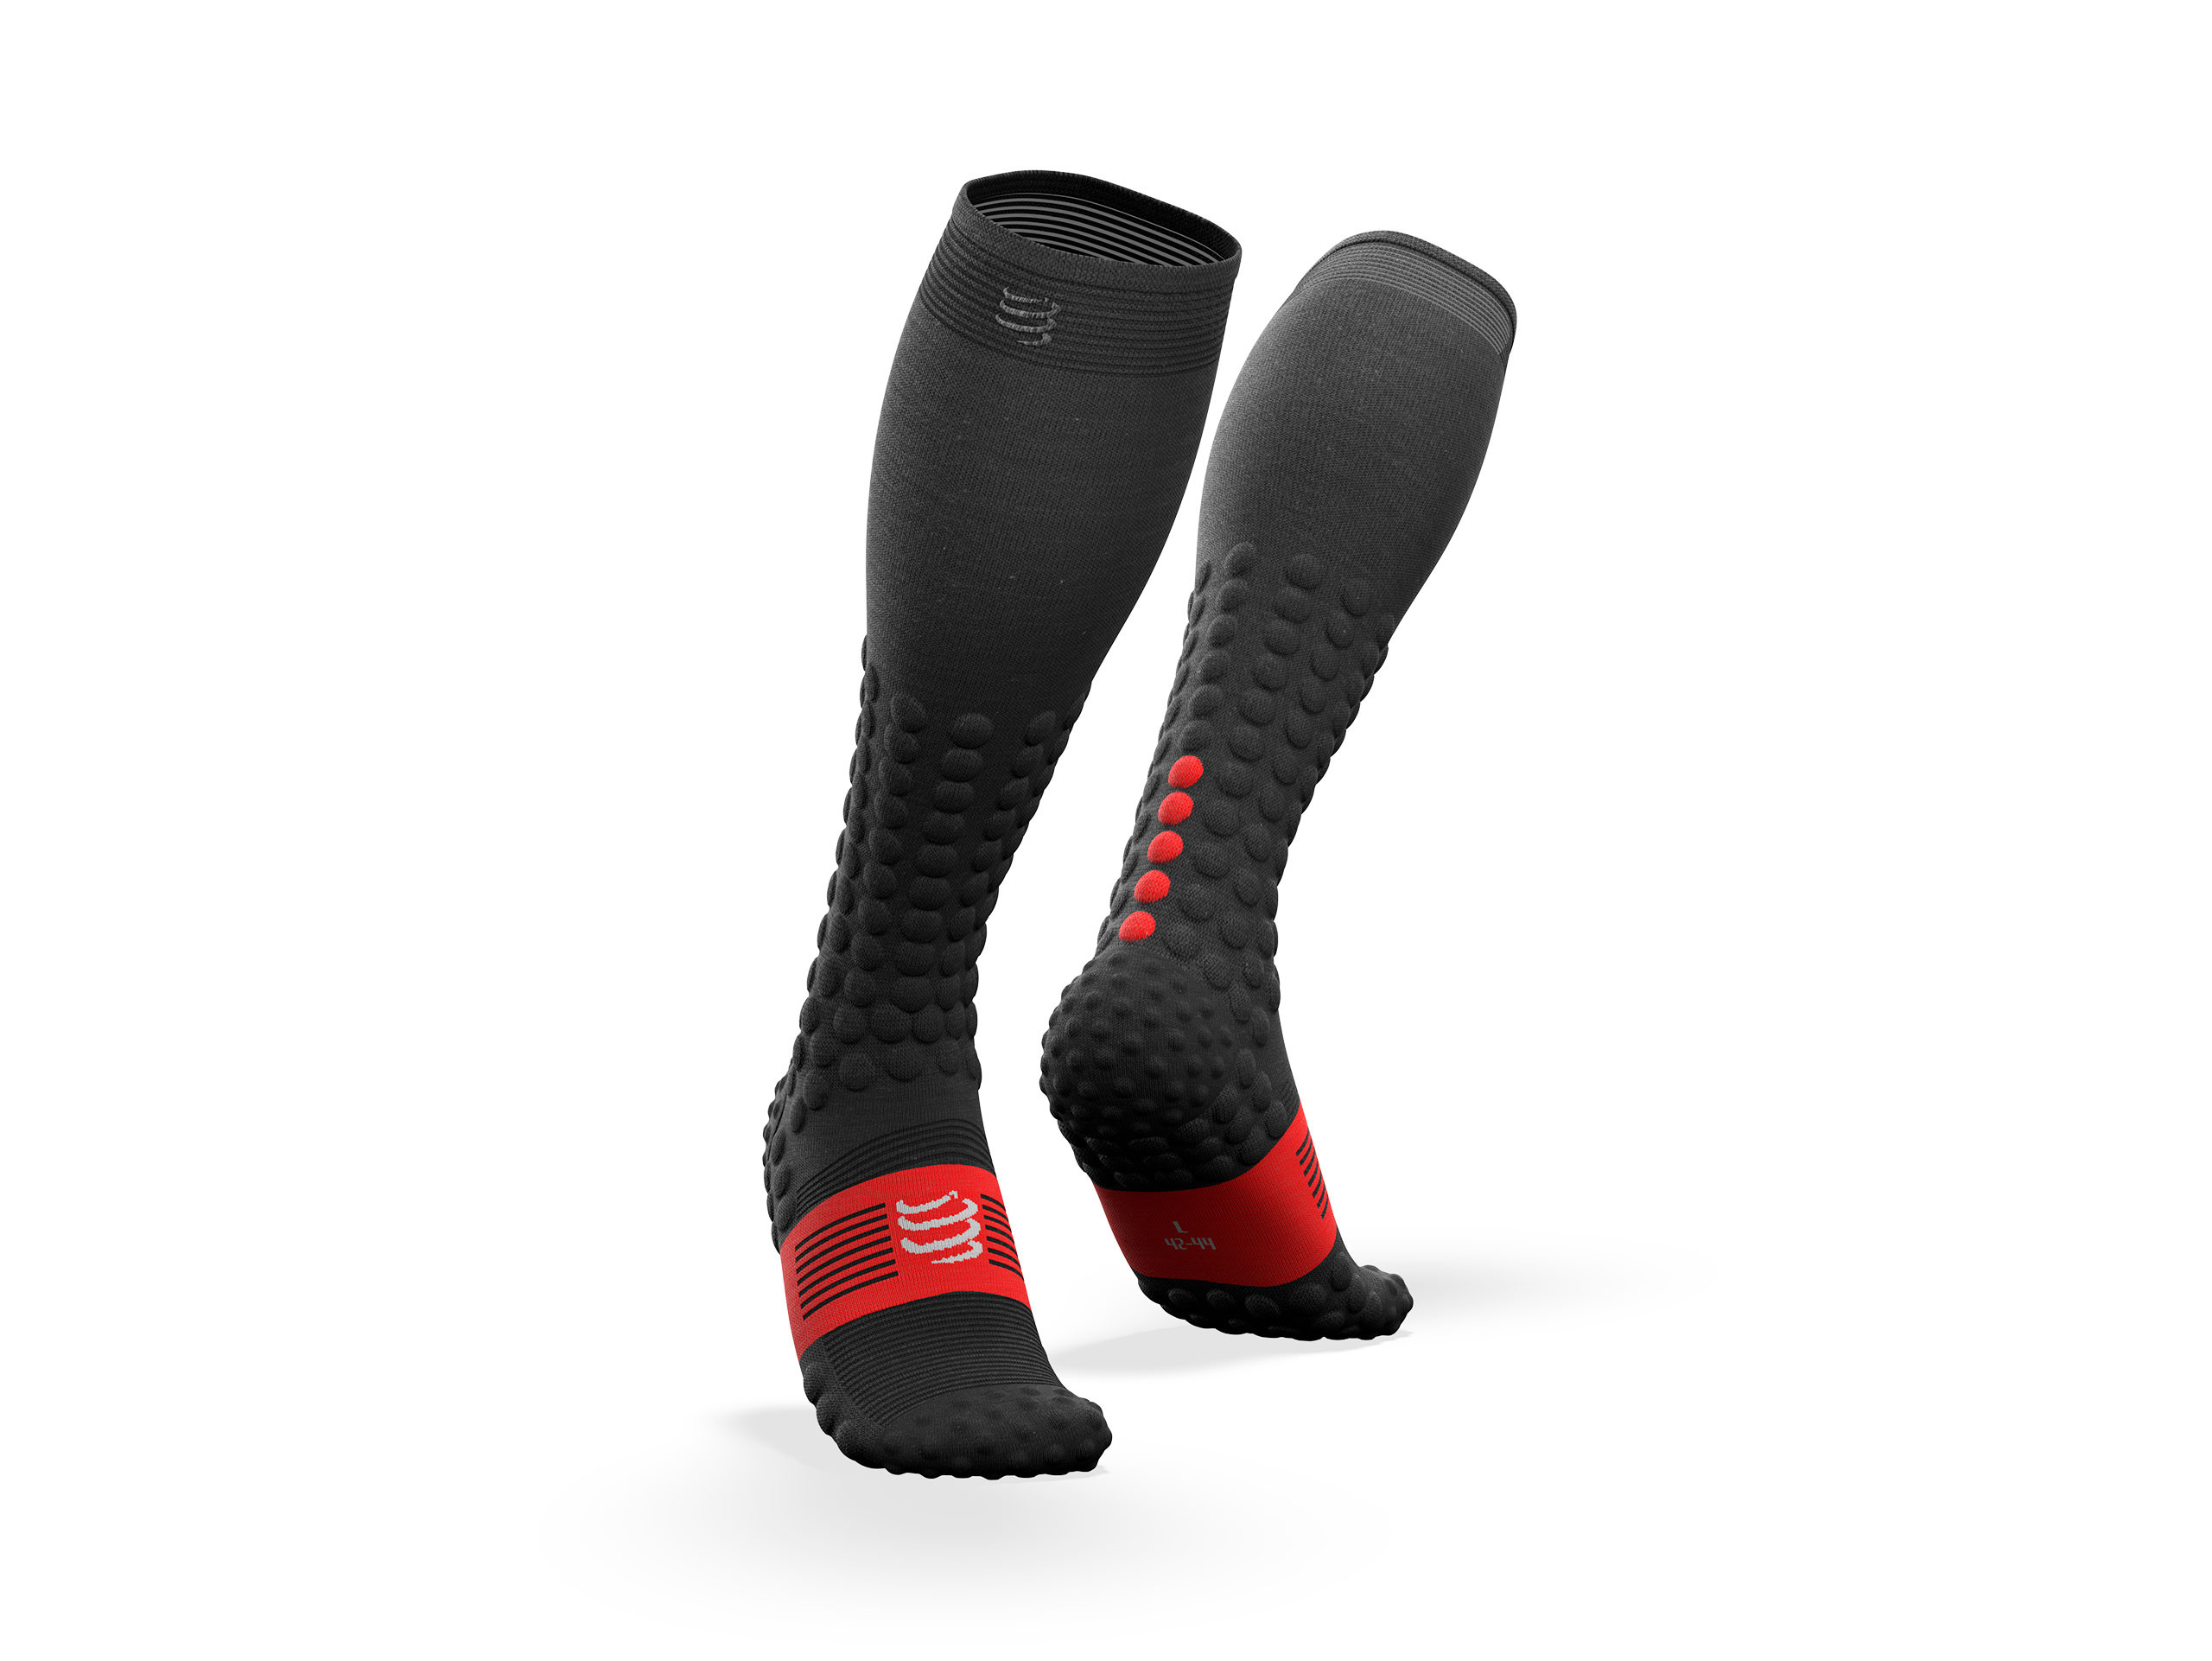 Full socks detox recovery black